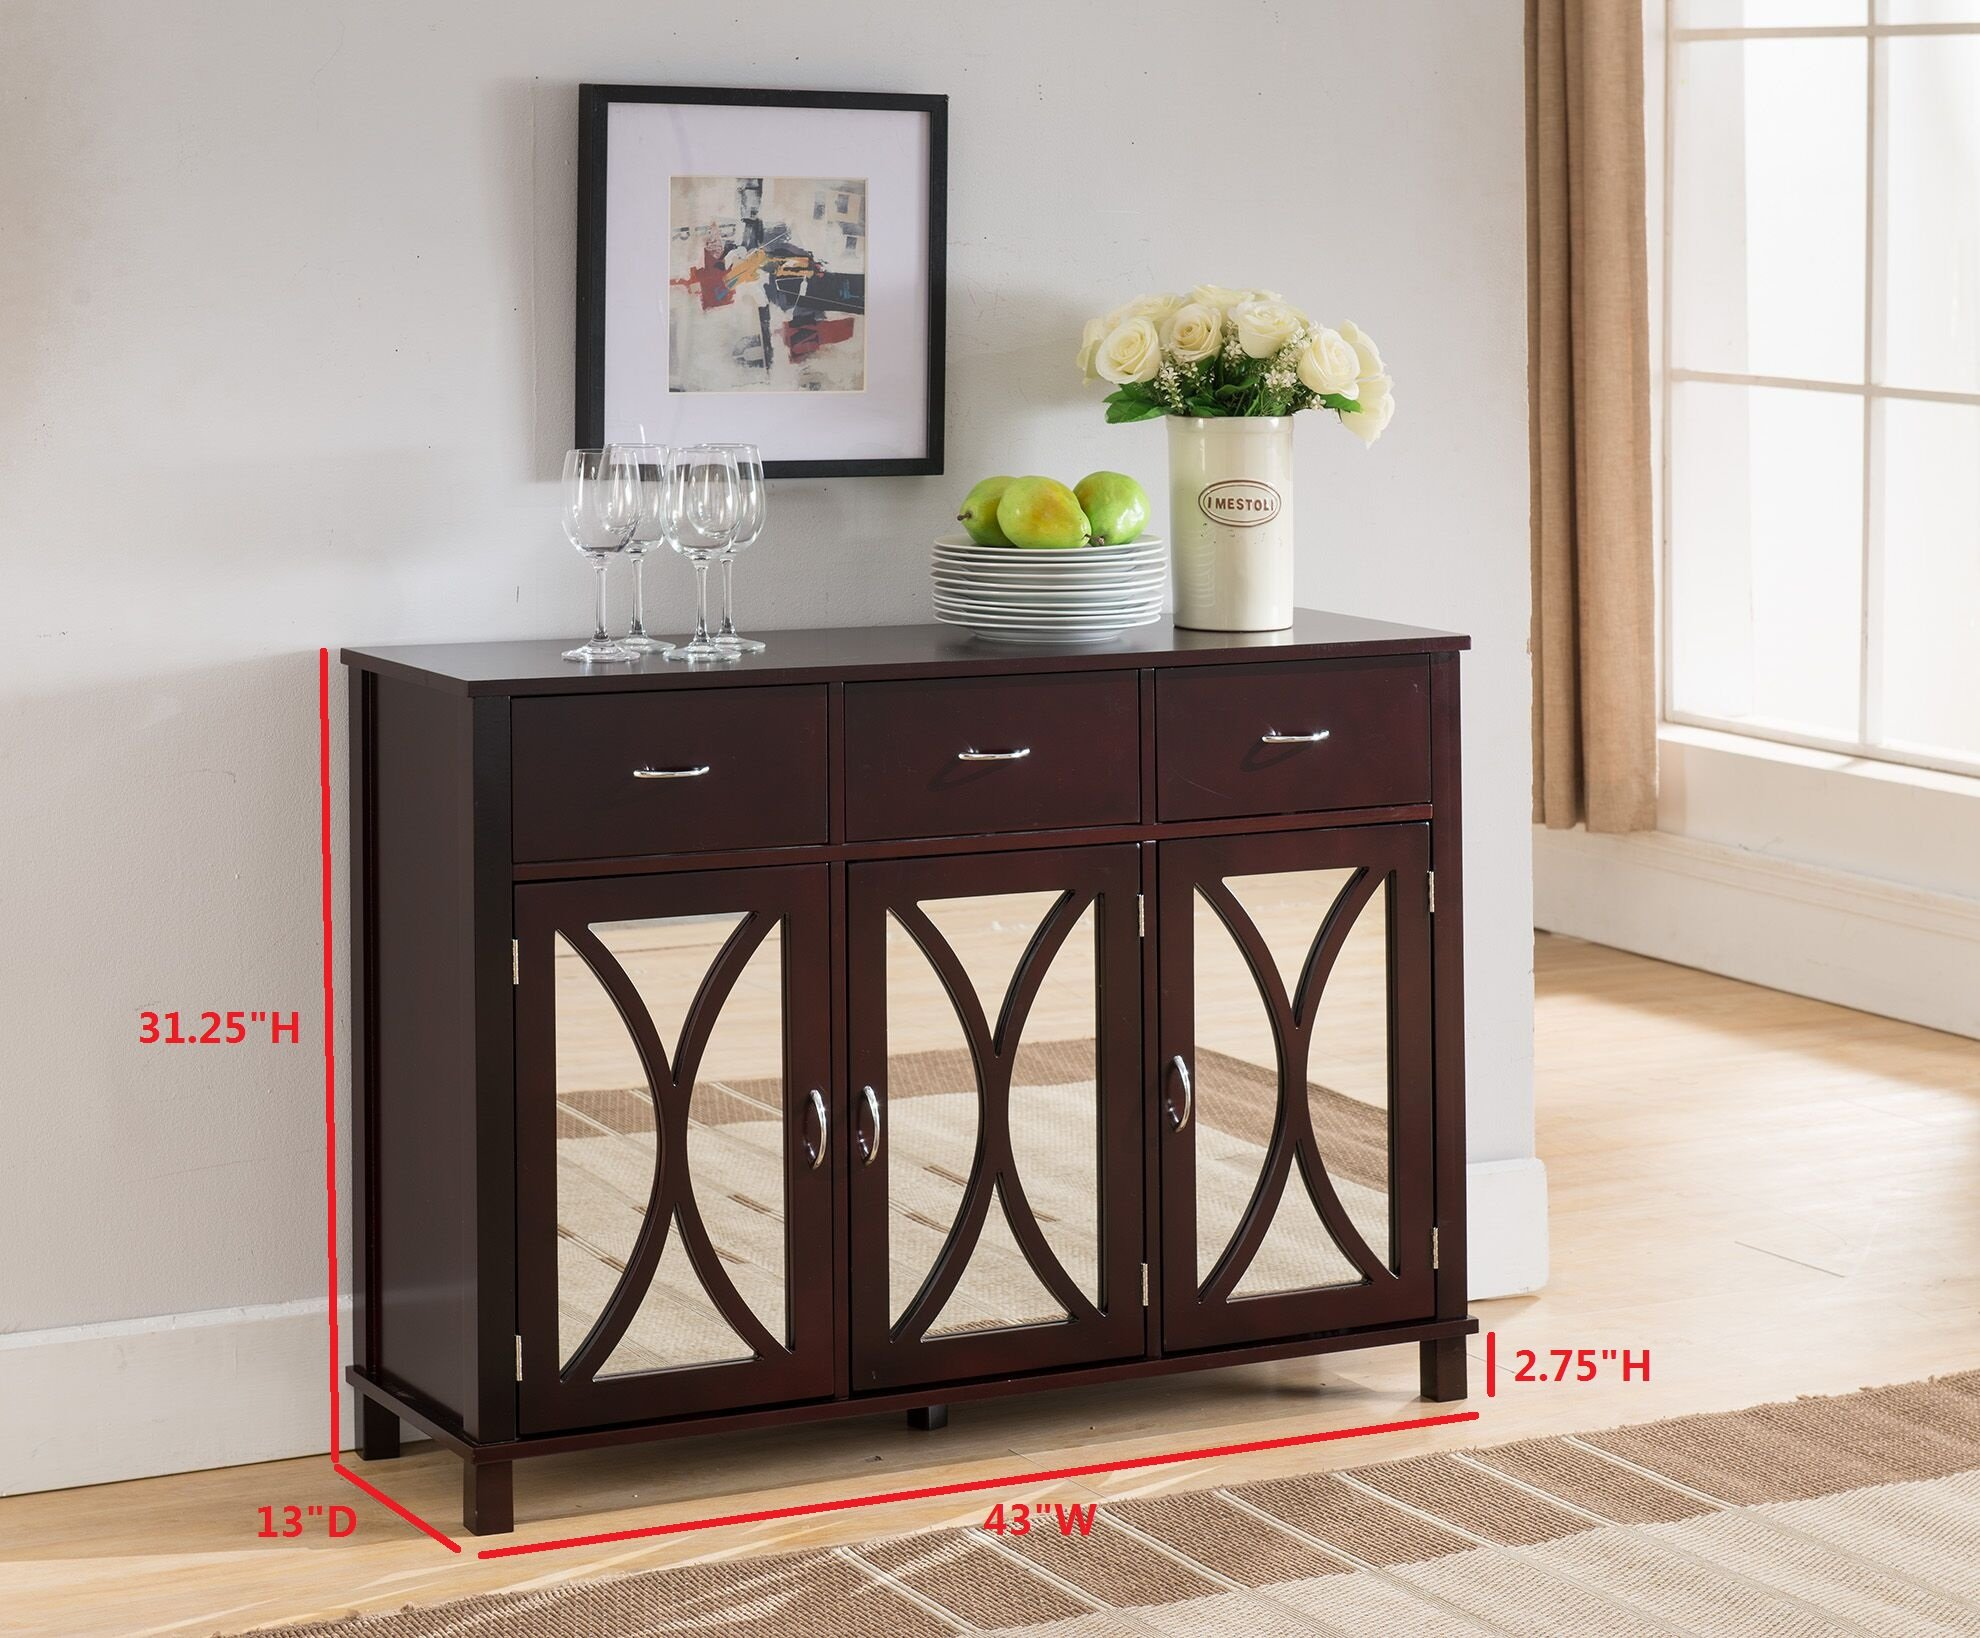 Kings Brand Rutheron Buffet Server Cabinet/Console Table, Mirrored Doors, Espresso by Kings Brand Furniture (Image #2)